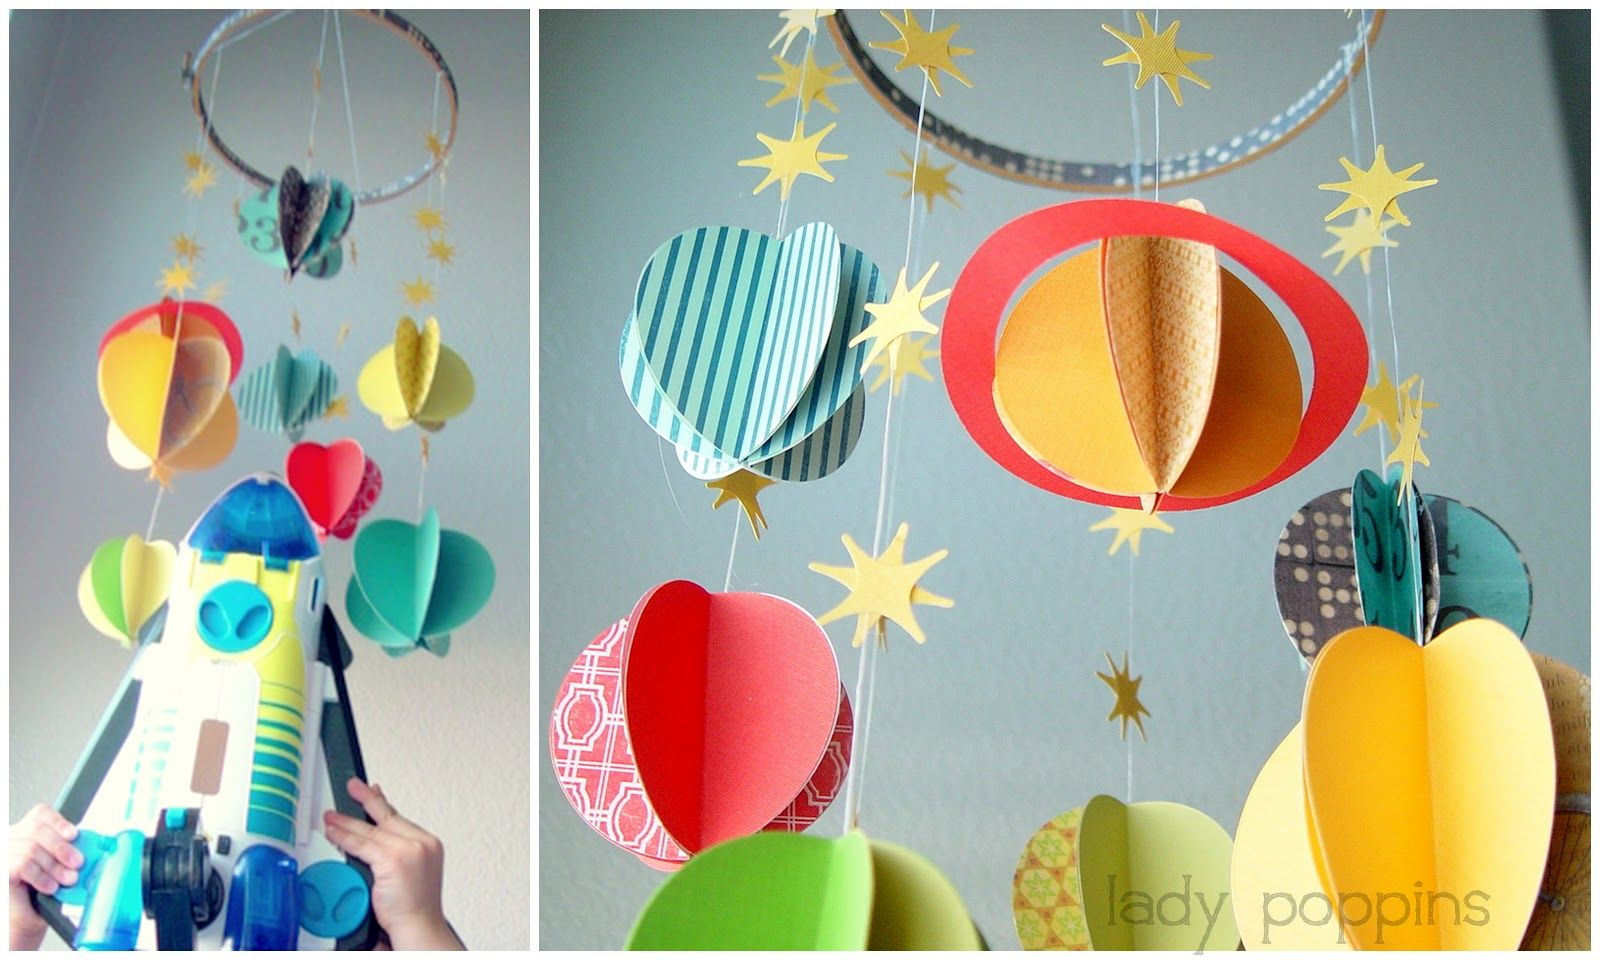 Lady Poppins Diy Solar System Mobile Crafts And Diy